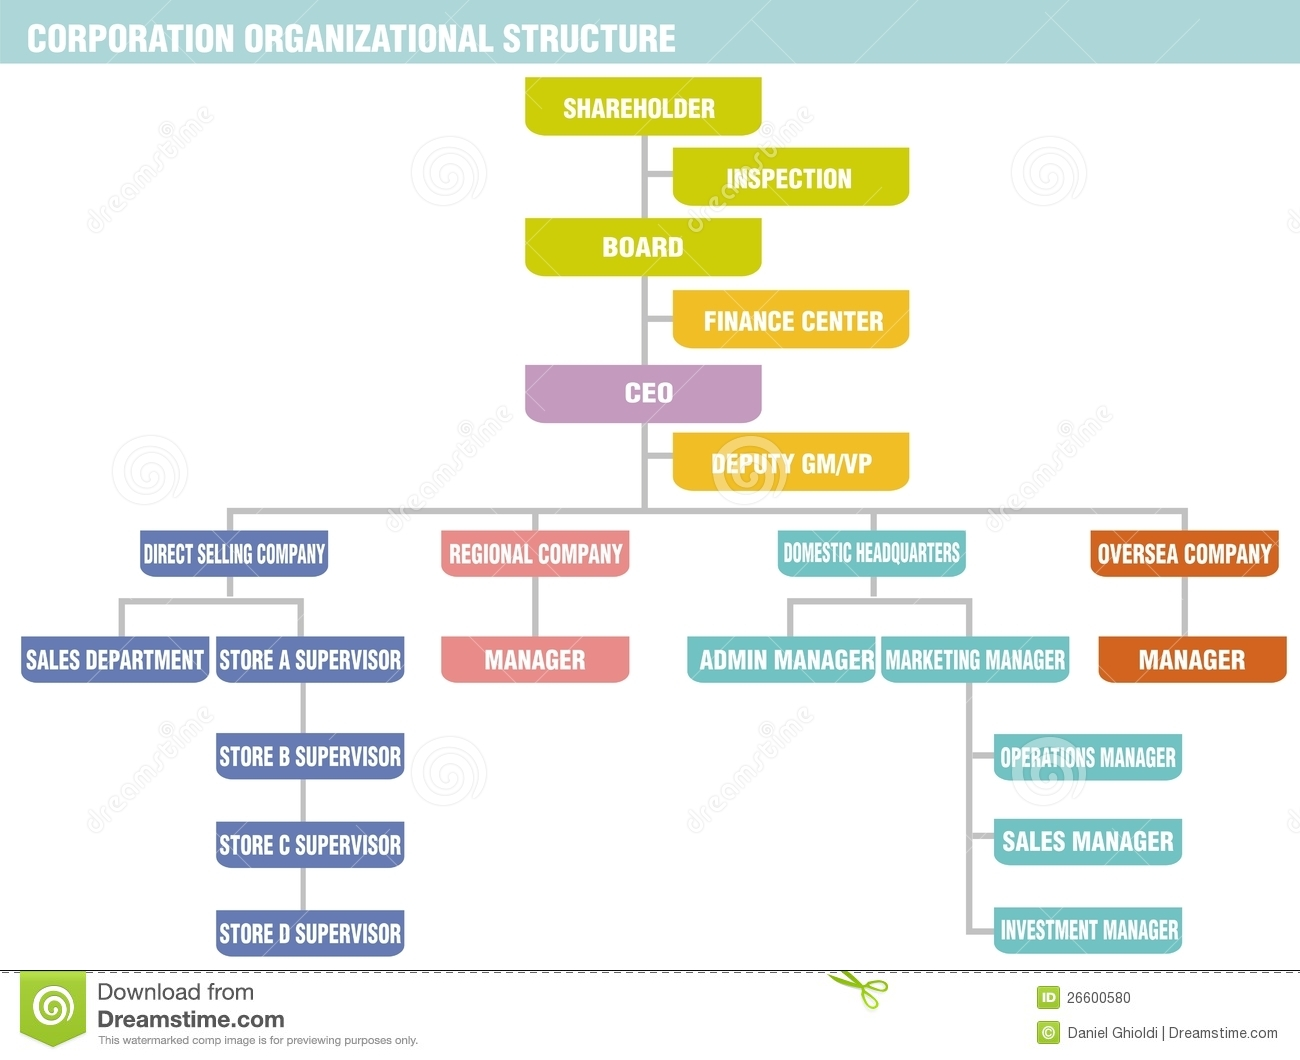 Corporation organizational structure stock illustration corporation organizational structure pooptronica Choice Image